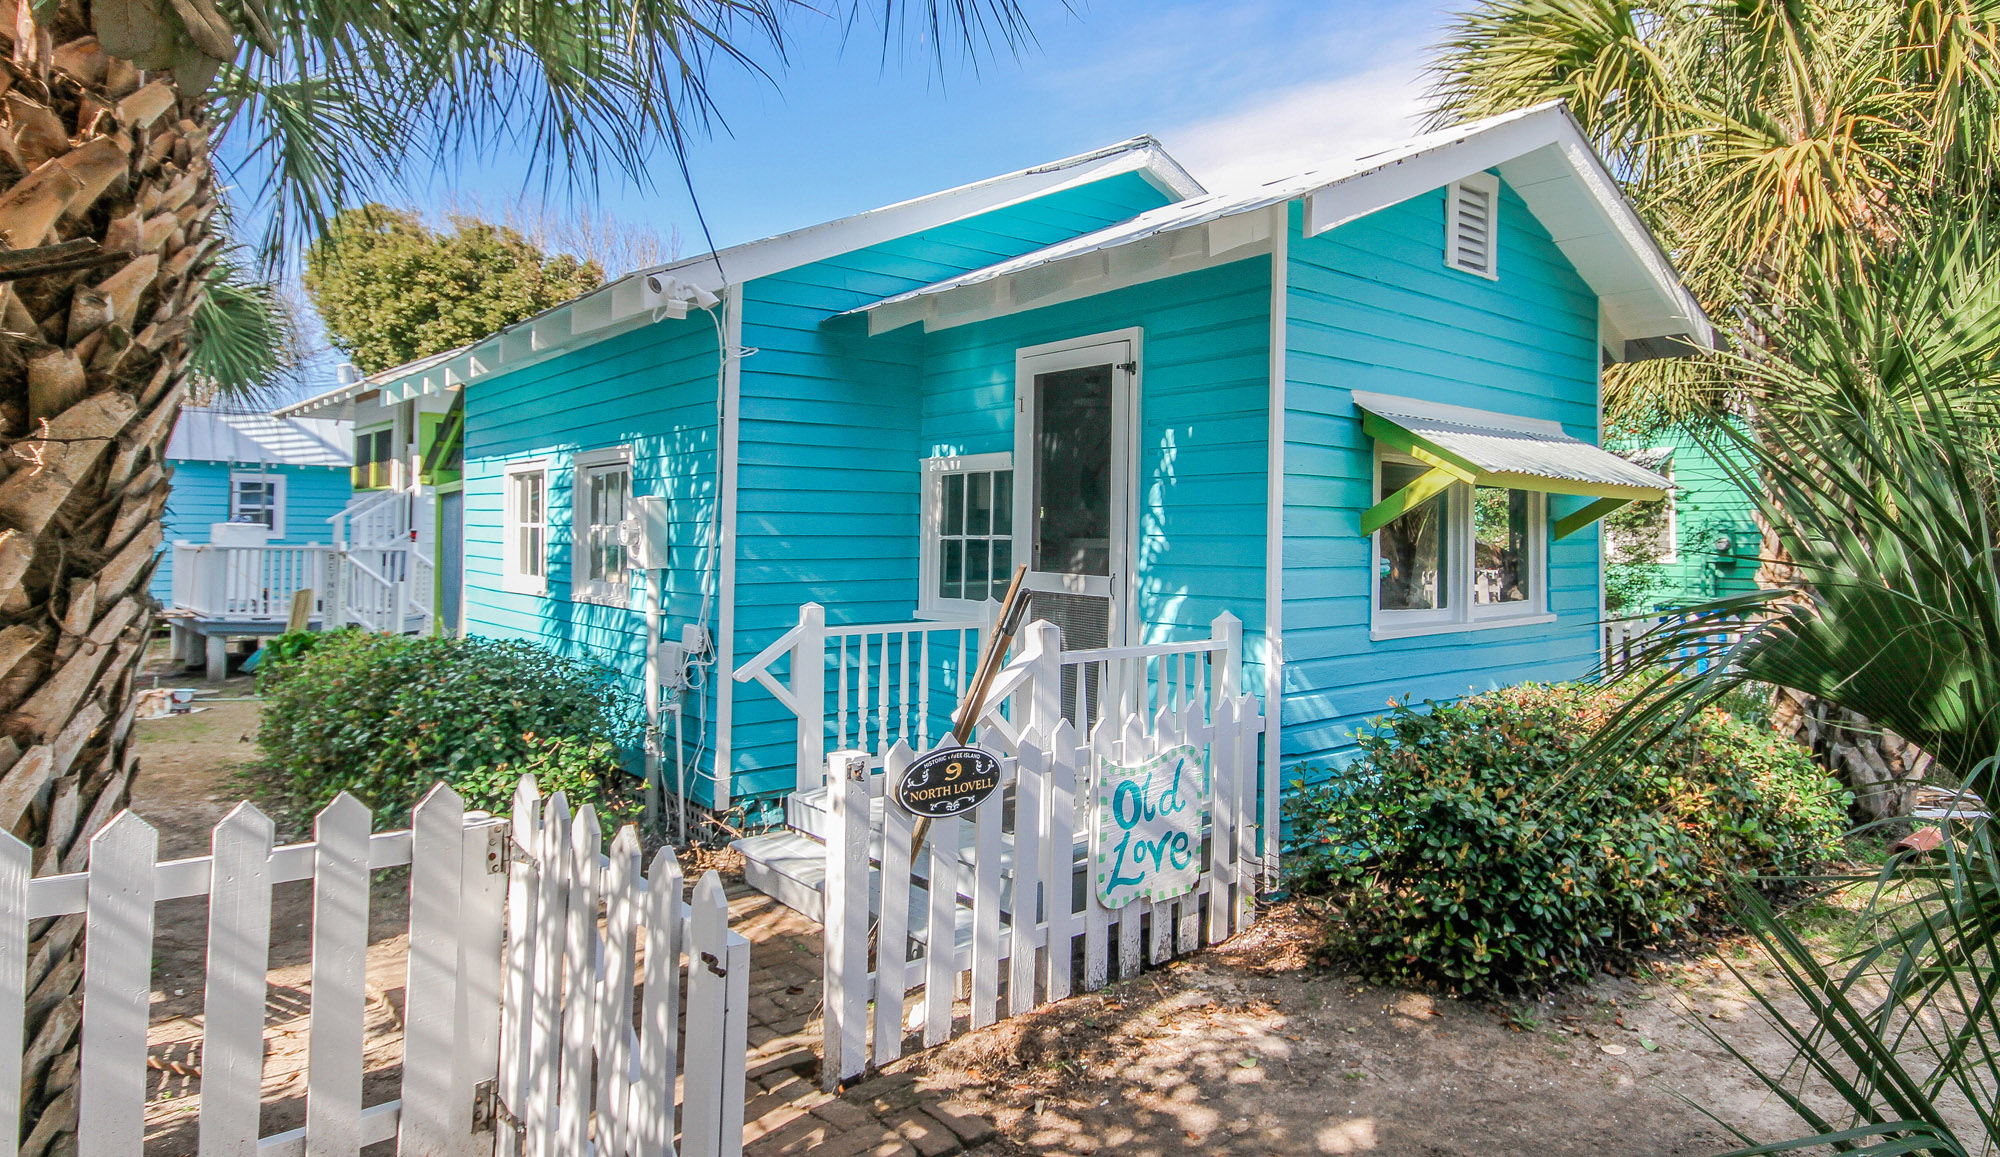 Mermaid Cottages Vacation Rentals on Tybee Island